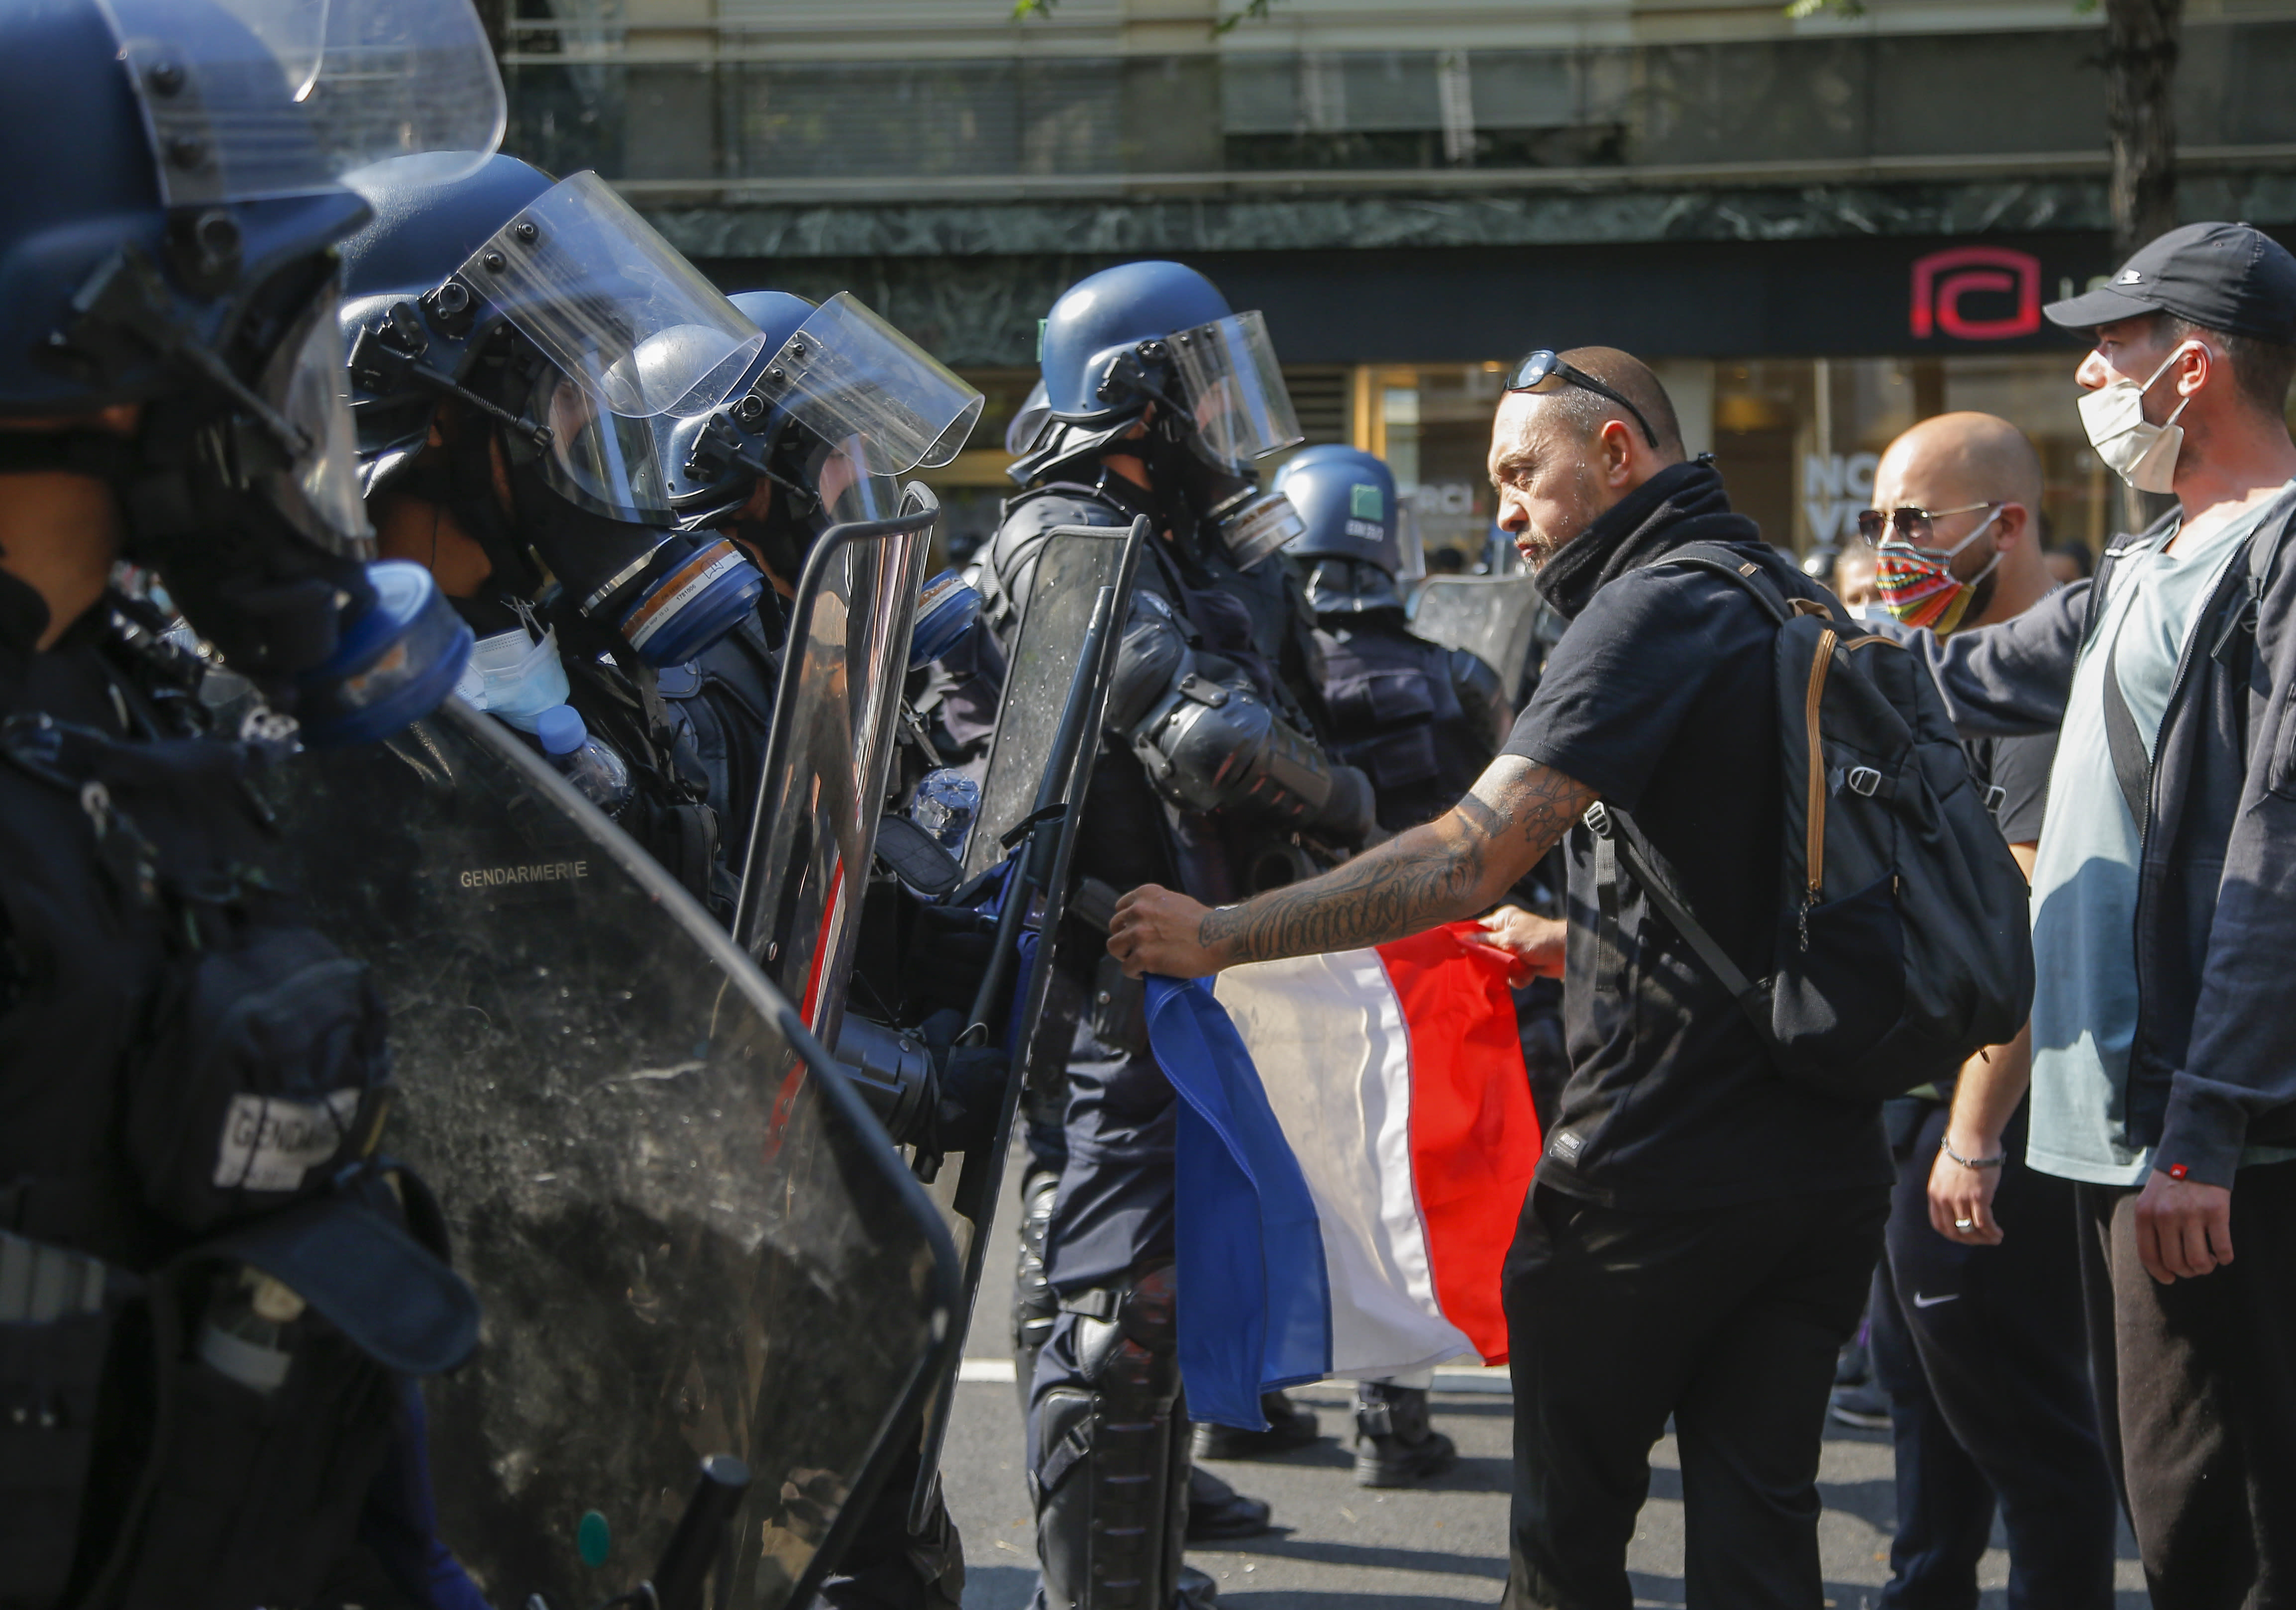 A yellow vest protester holds a French flag as he faces French riot police during a march in Paris, Saturday, Sept. 12, 2020. Activists relaunched France's yellow vest movement Saturday after the disruptive demonstrations against Emmanuel Macron's presidency and perceived elitism tapered off during the coronavirus pandemic.(AP Photo/Michel Euler)